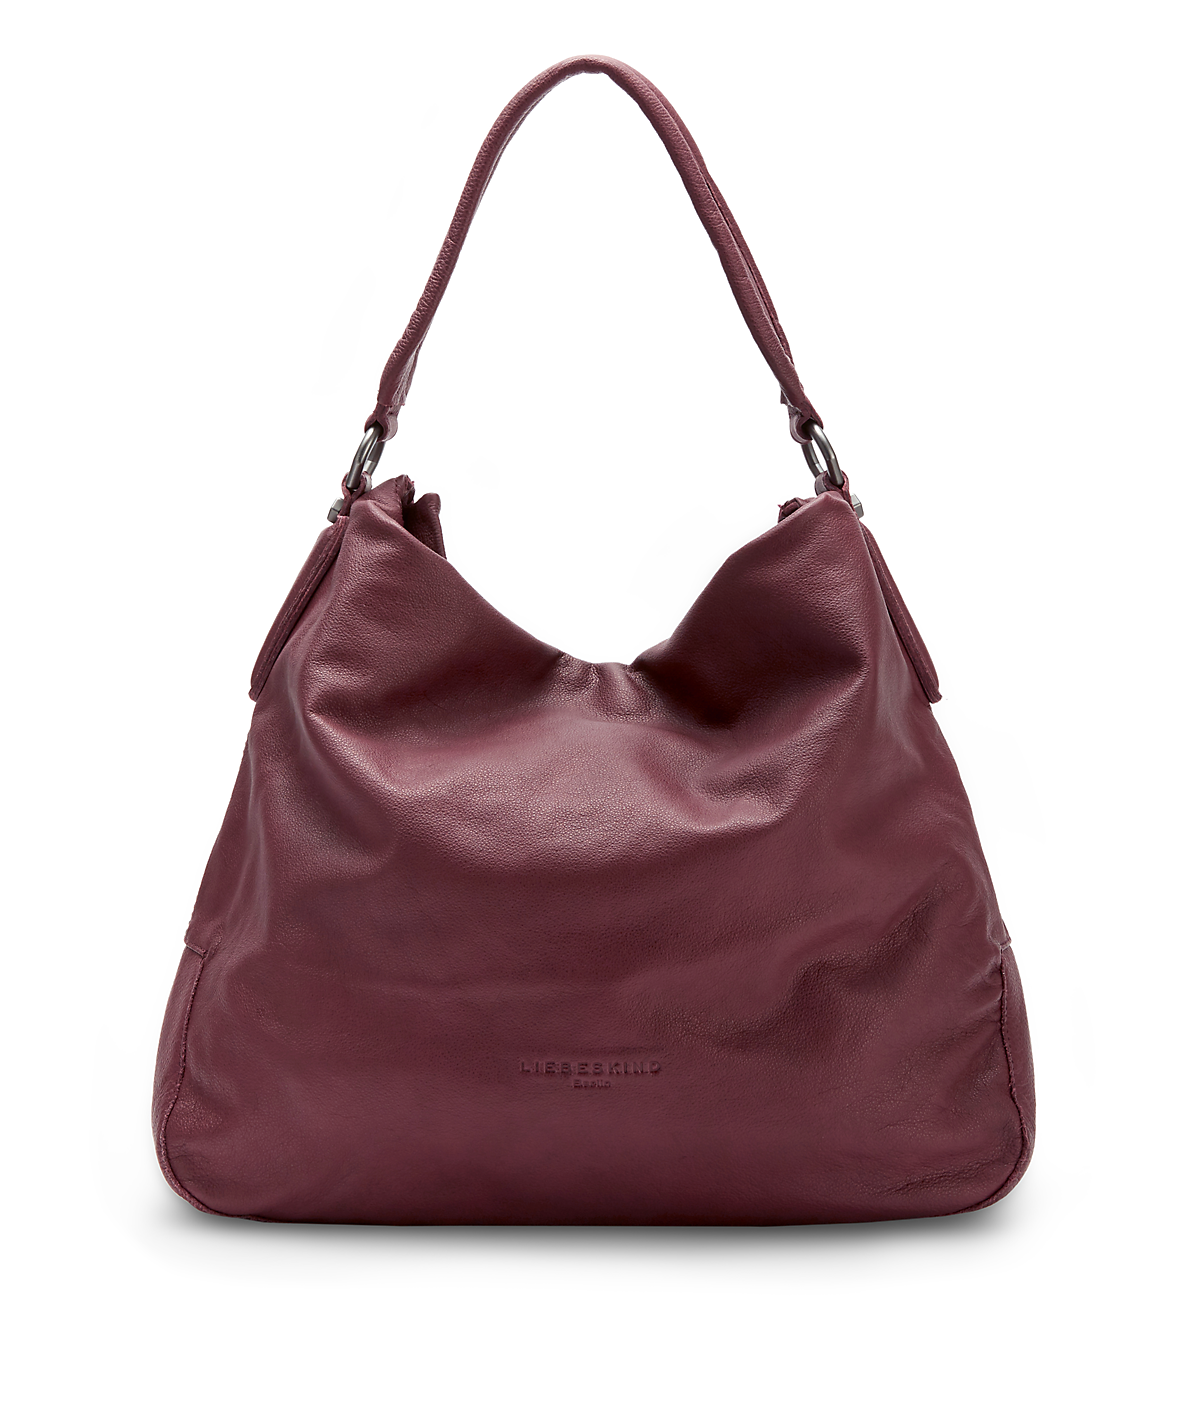 YokohamaW shoulder bag from liebeskind